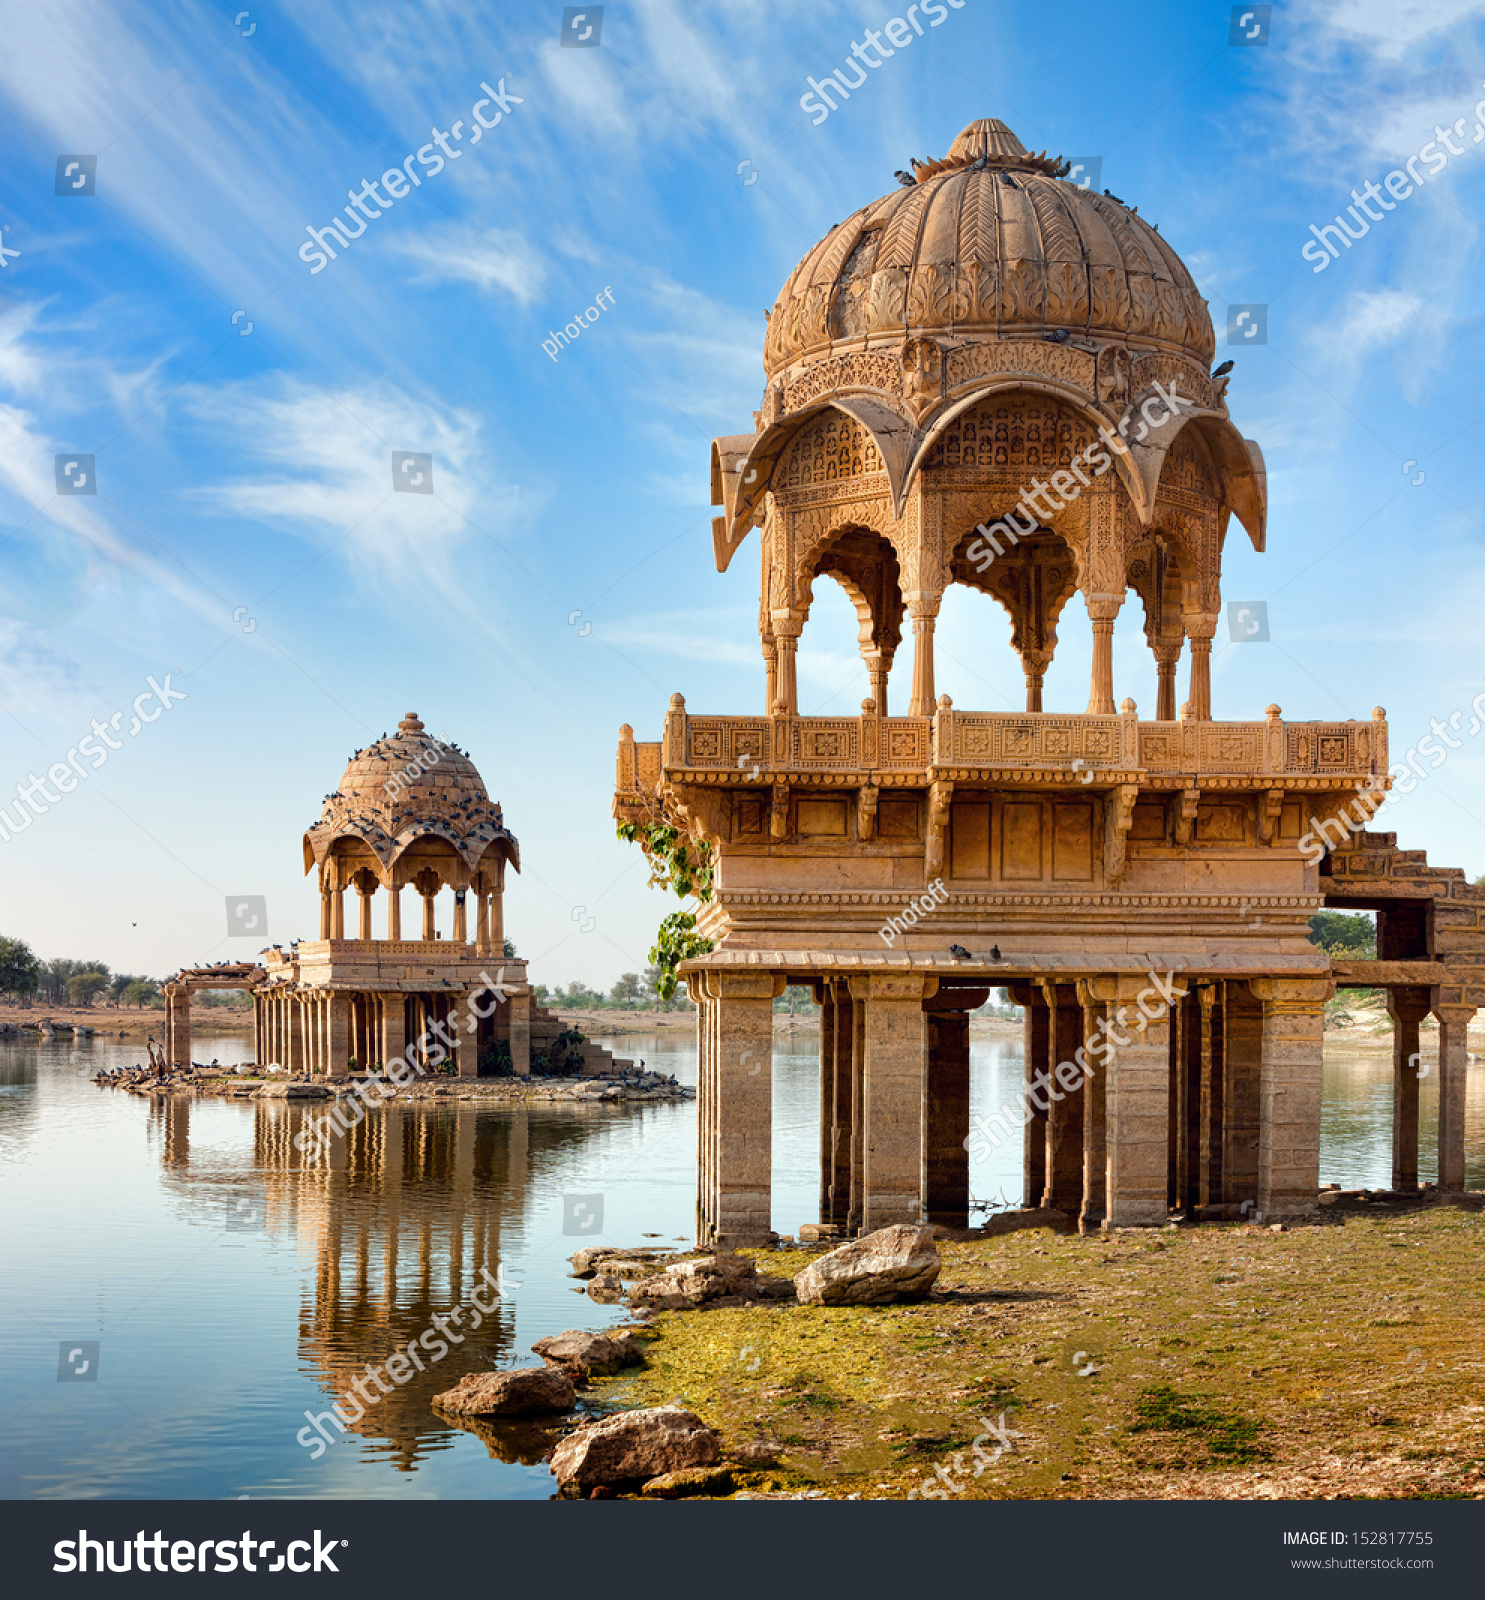 Gadi Sagar Gadisar Lake Is One Of The Most Important Tourist Attractions In Jaisalmer